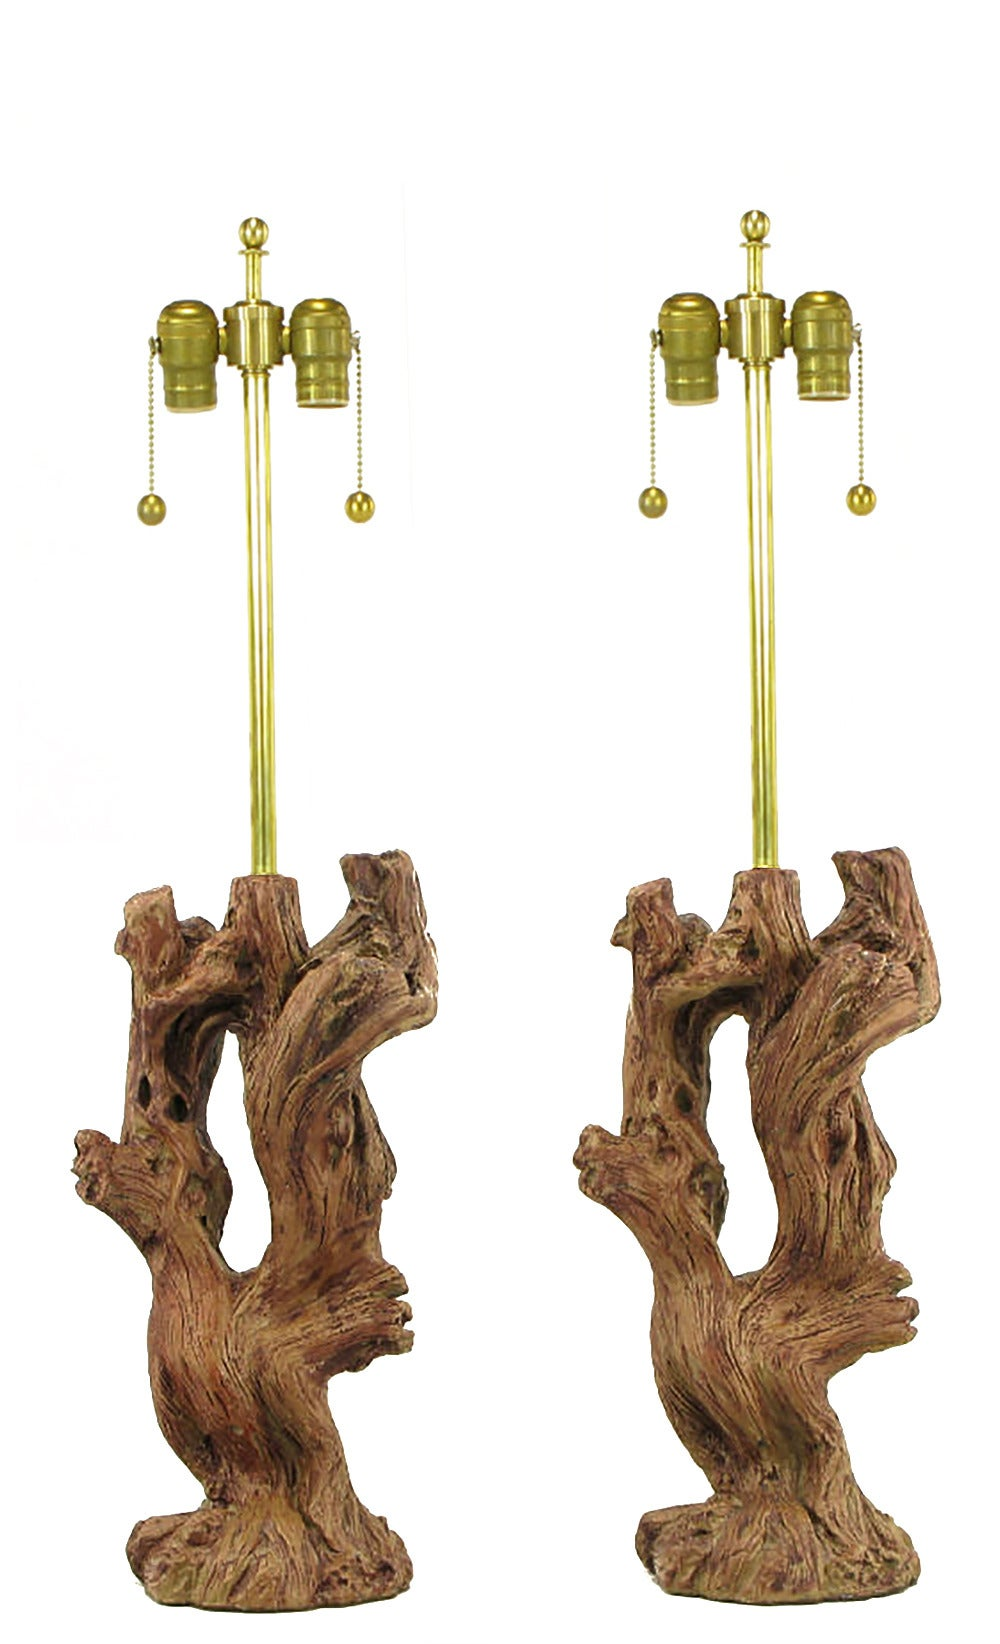 Pair of ceramic faux bois driftwood bodied table lamps with beautifully authentic glazing. Brass stem and double socket cluster, sold sans shades.